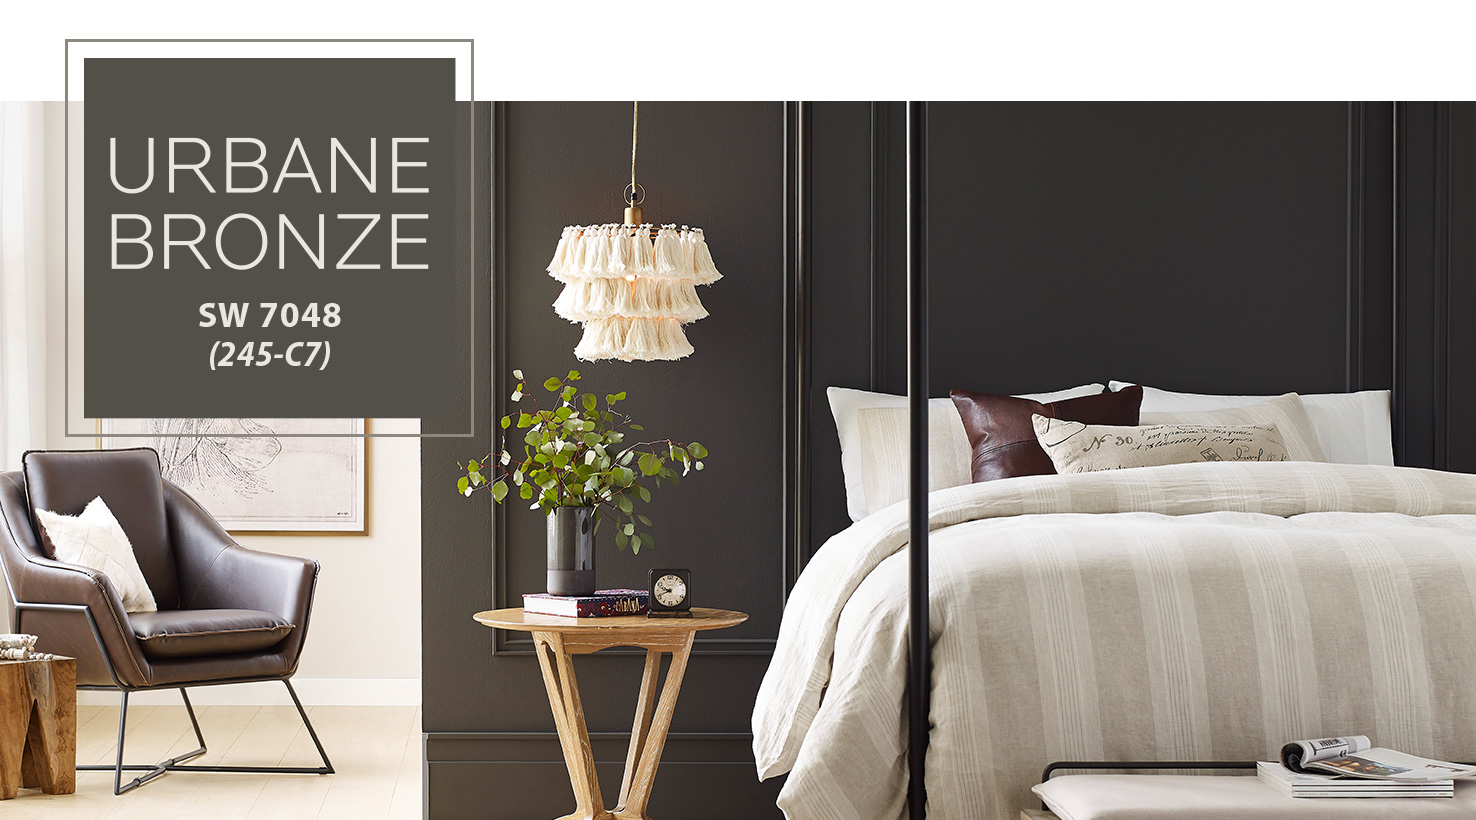 Sherwin Williams Urbane Bronze 2021 Color of the Year.  Image with Urbane Bronze accent wall behind a neutral striped bed.